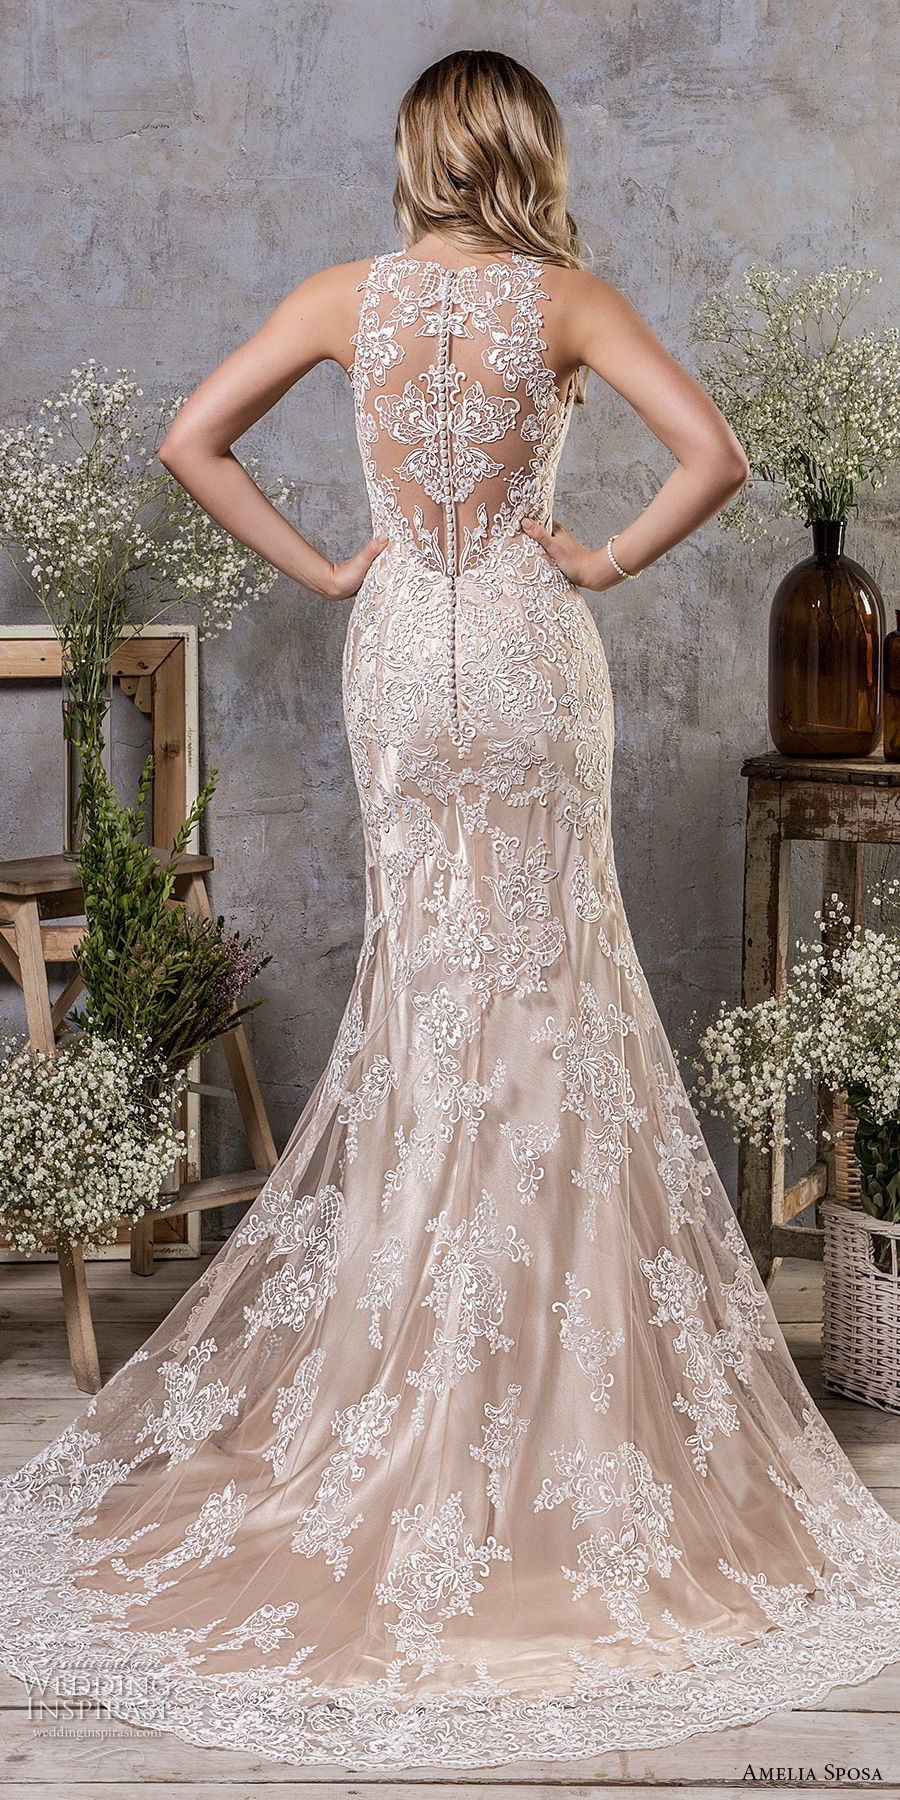 amelia sposa fall 2018 bridal sleeveless illusion jewel sweetheart neckline full embellishment elegant champagne color trumpet wedding dress covered lace back sweep train (2) bv